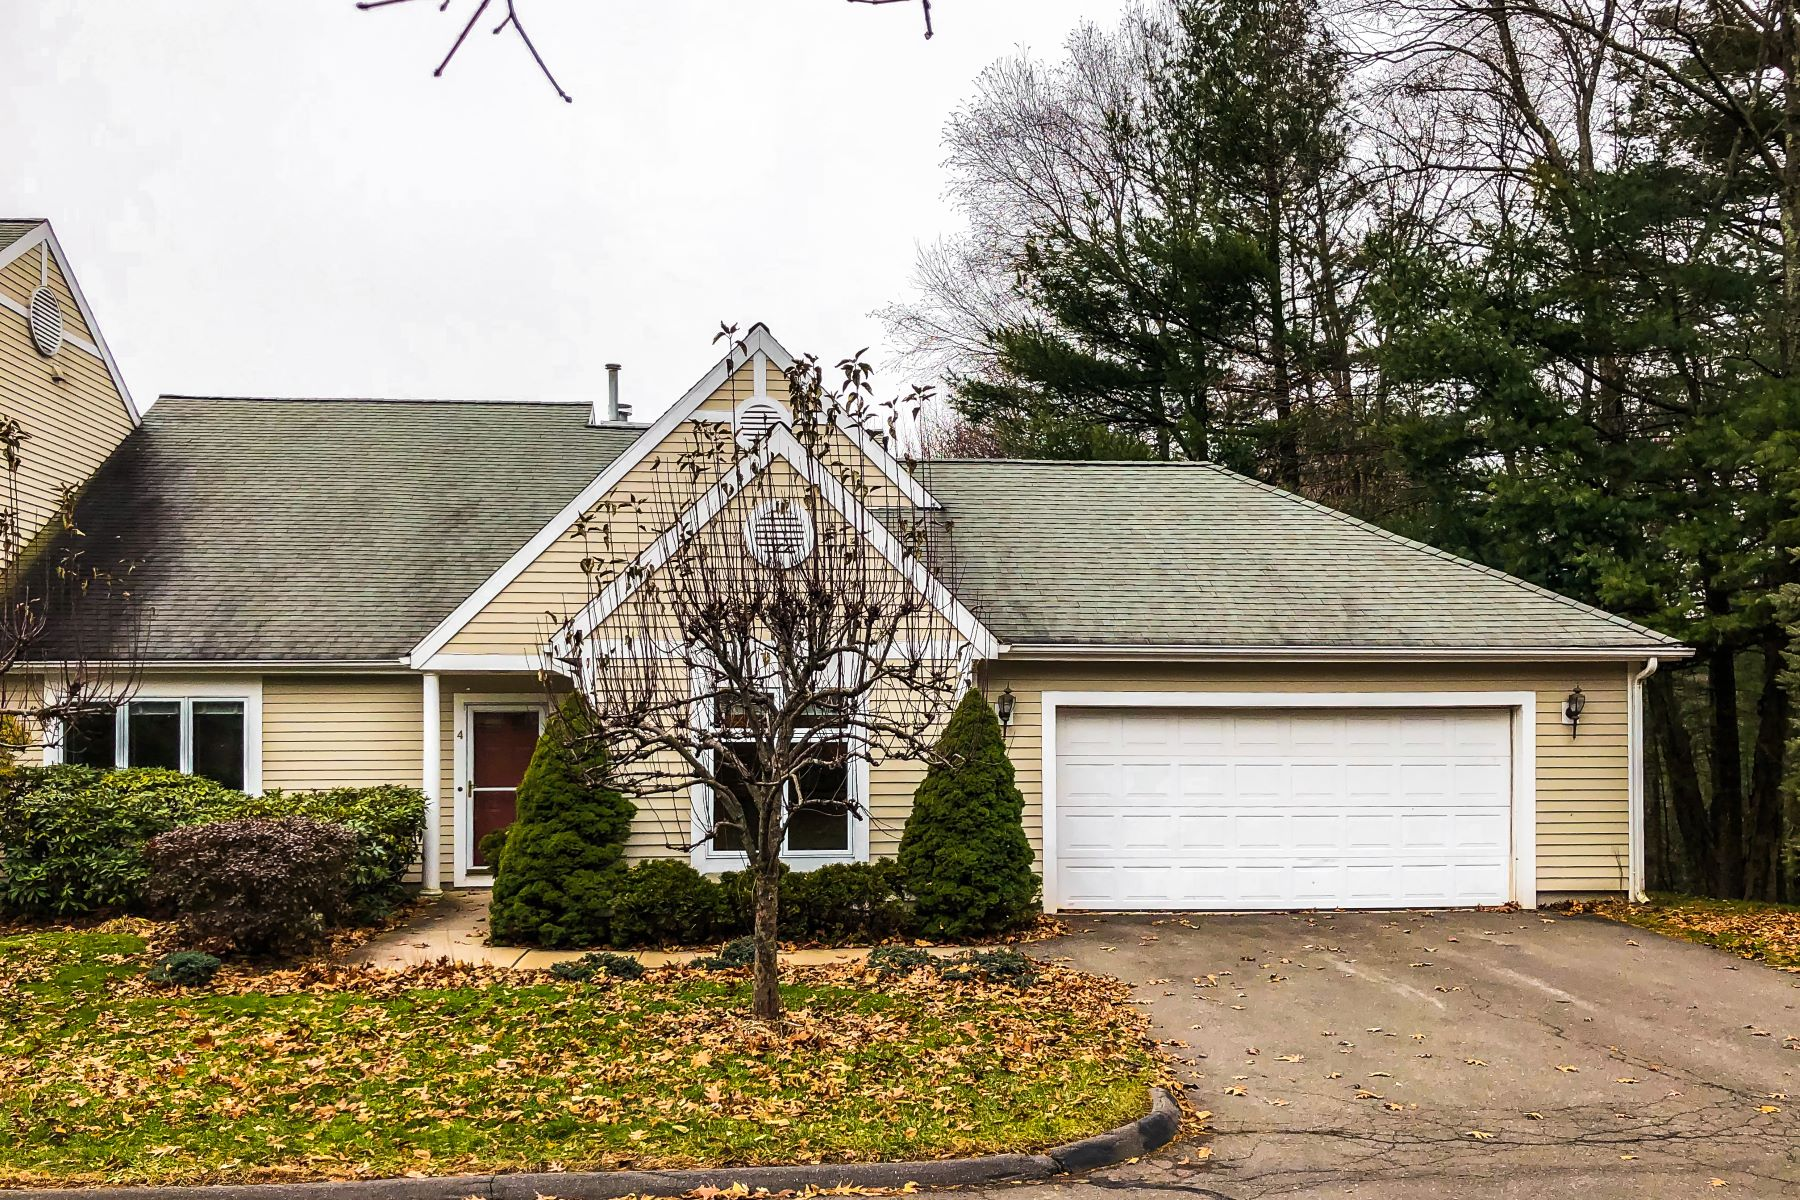 condominiums for Sale at 4 Easton Place 4, Avon, Connecticut 06001 United States